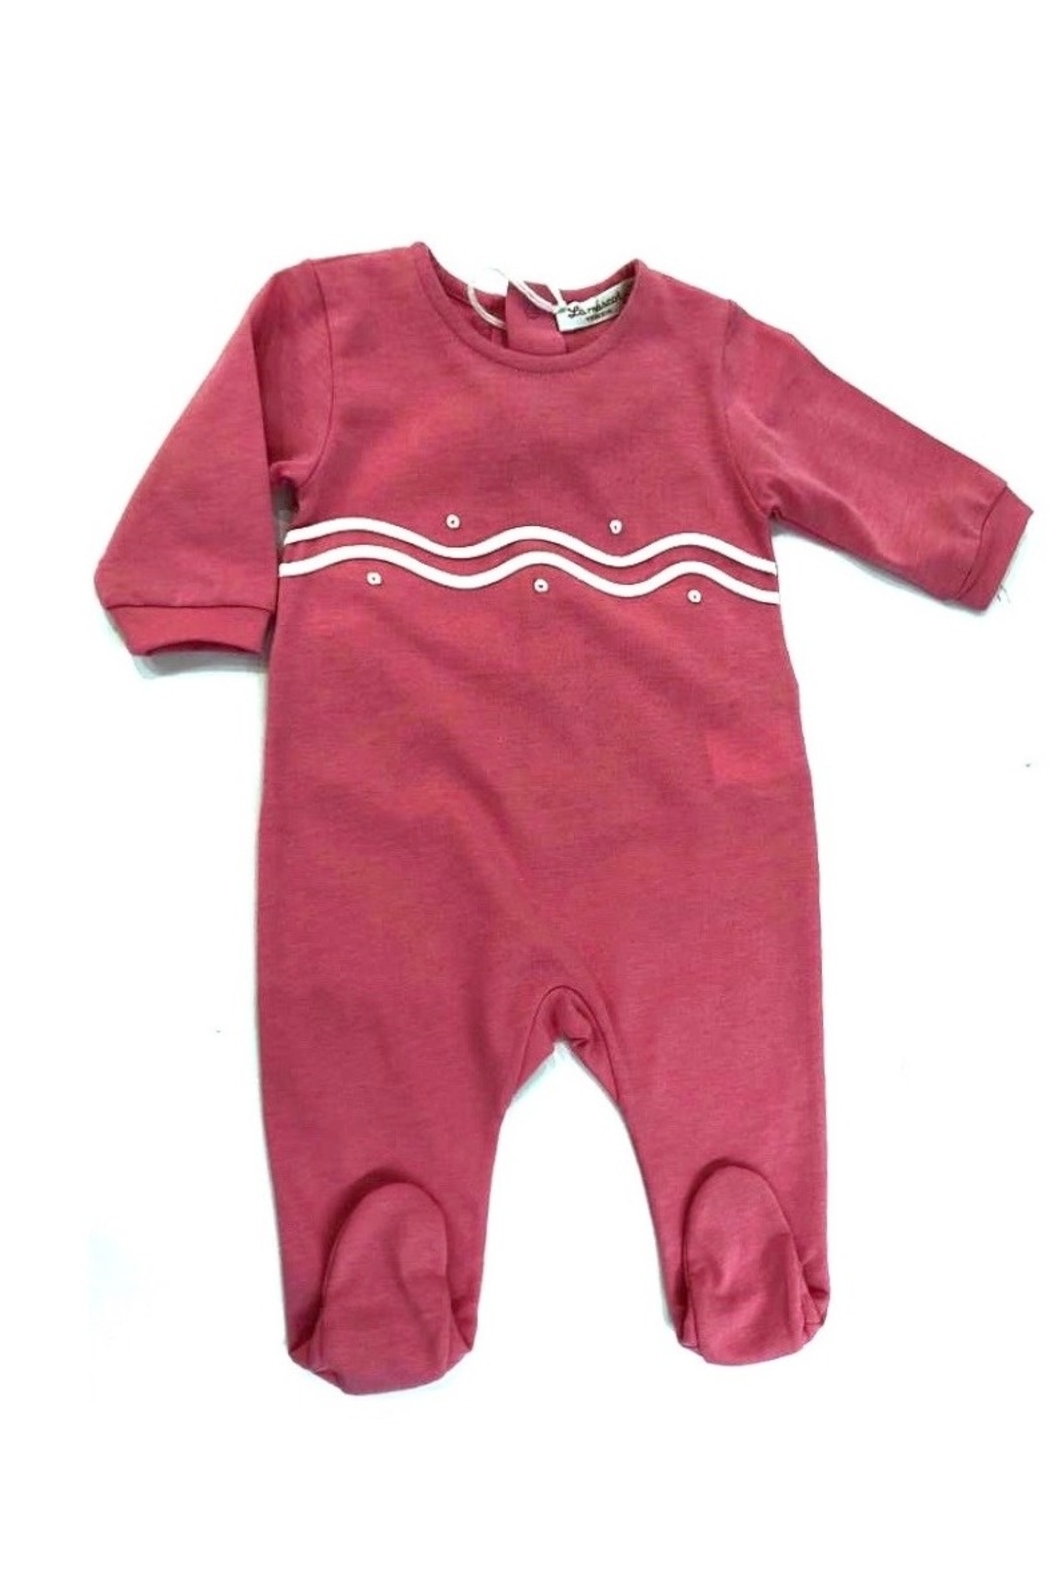 LA MASCOT  BABY FOOTIE WITH SCALLOPED EMBROIDERY - Main Image